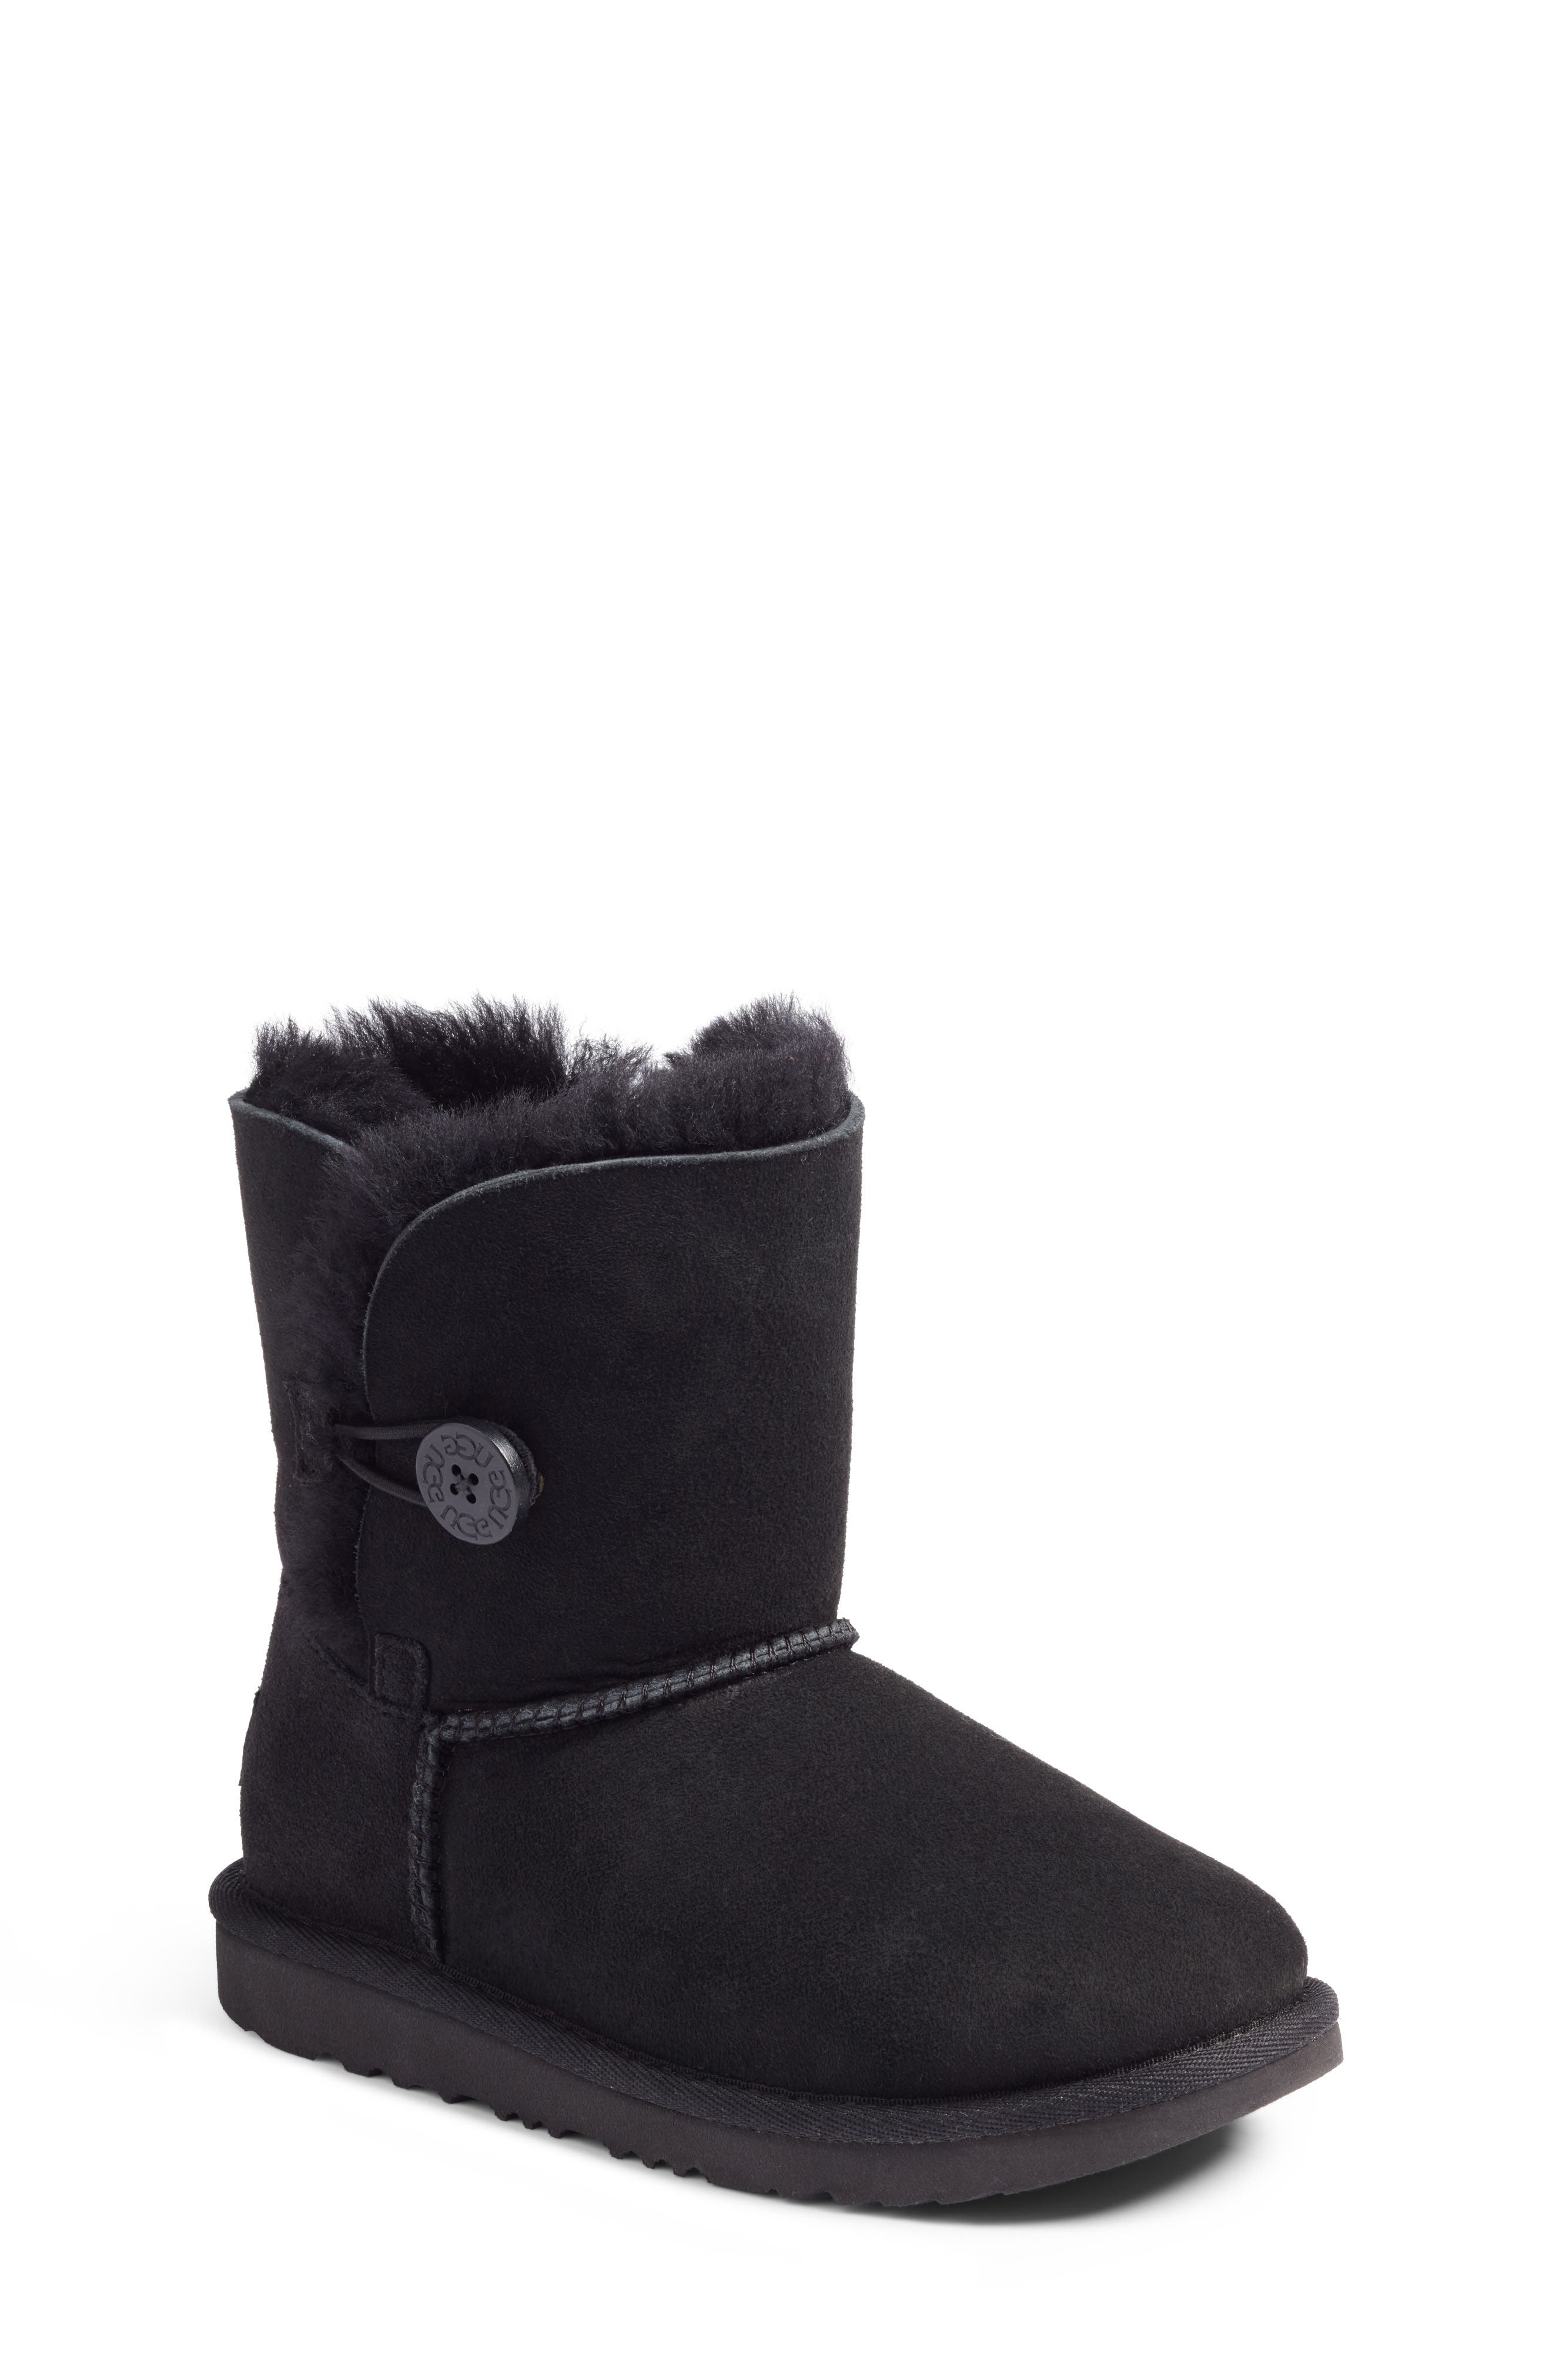 UGG<SUP>®</SUP>, Bailey Button II Water Resistant Genuine Shearling Boot, Main thumbnail 1, color, BLACK SUEDE